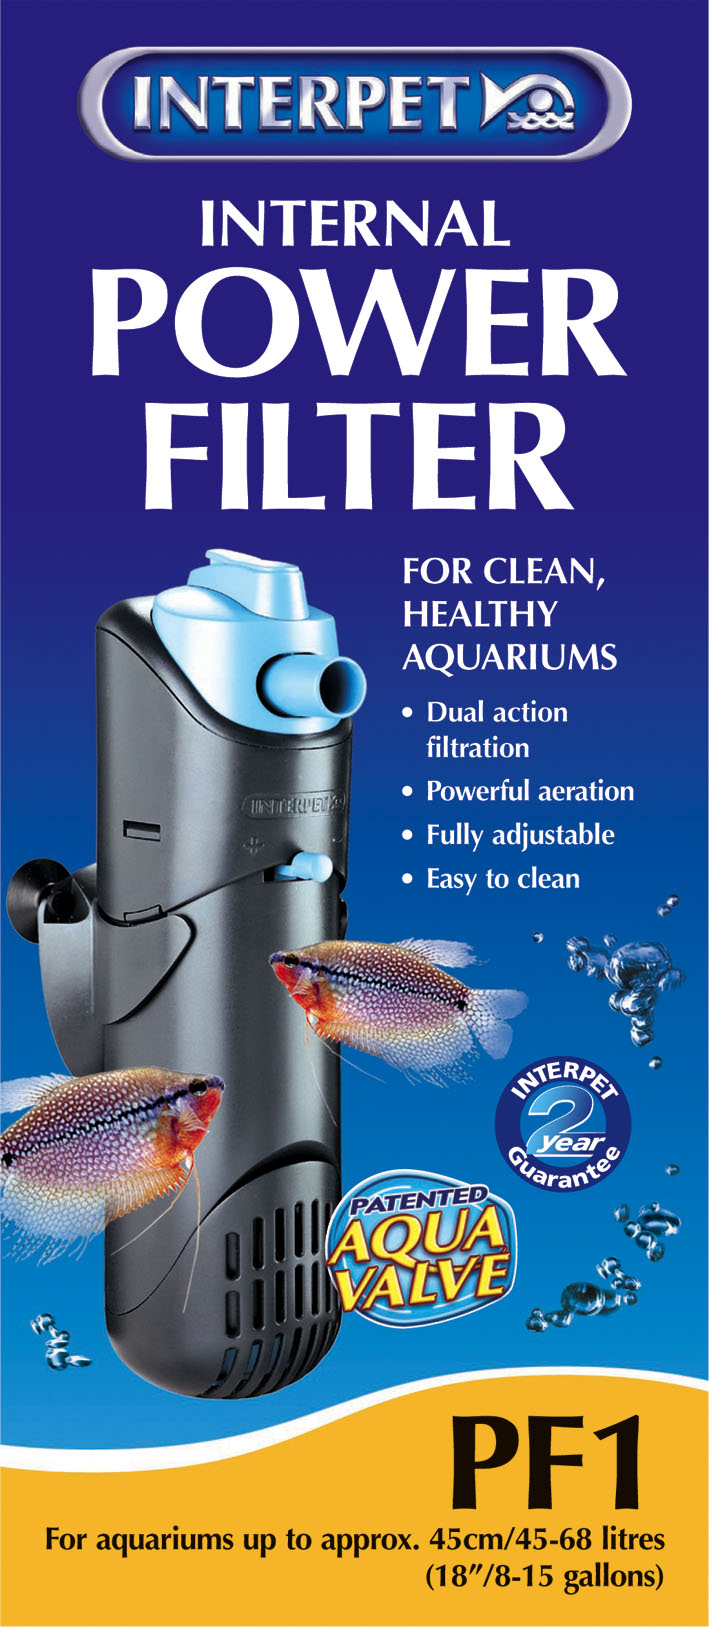 Interpet Aquarium Power Filters